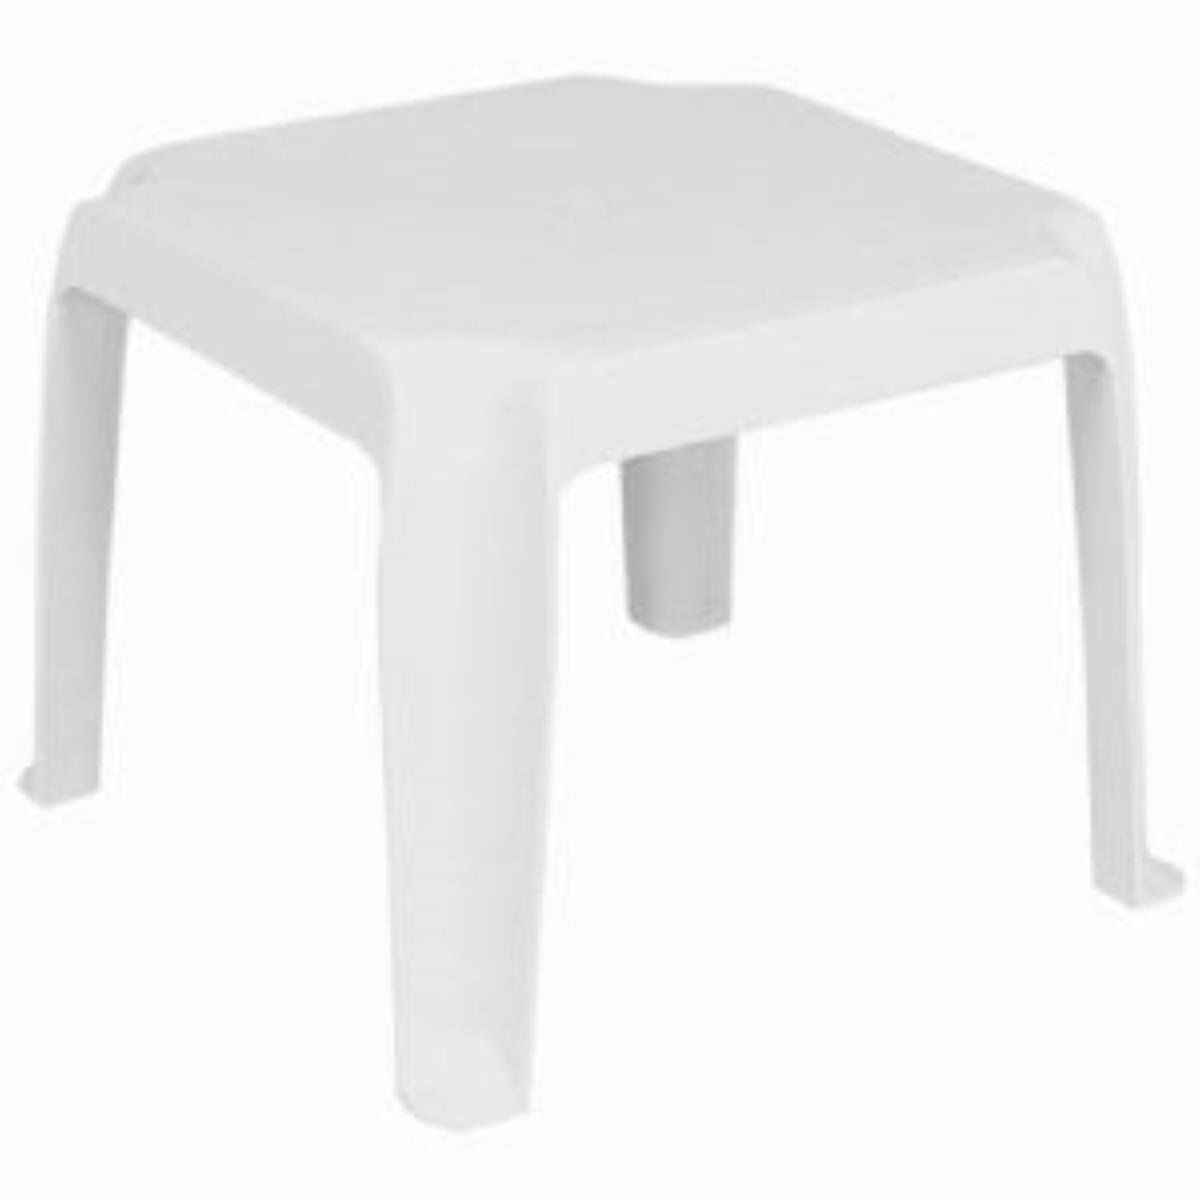 Small White Plastic Table Used Home Office Furniture Check More